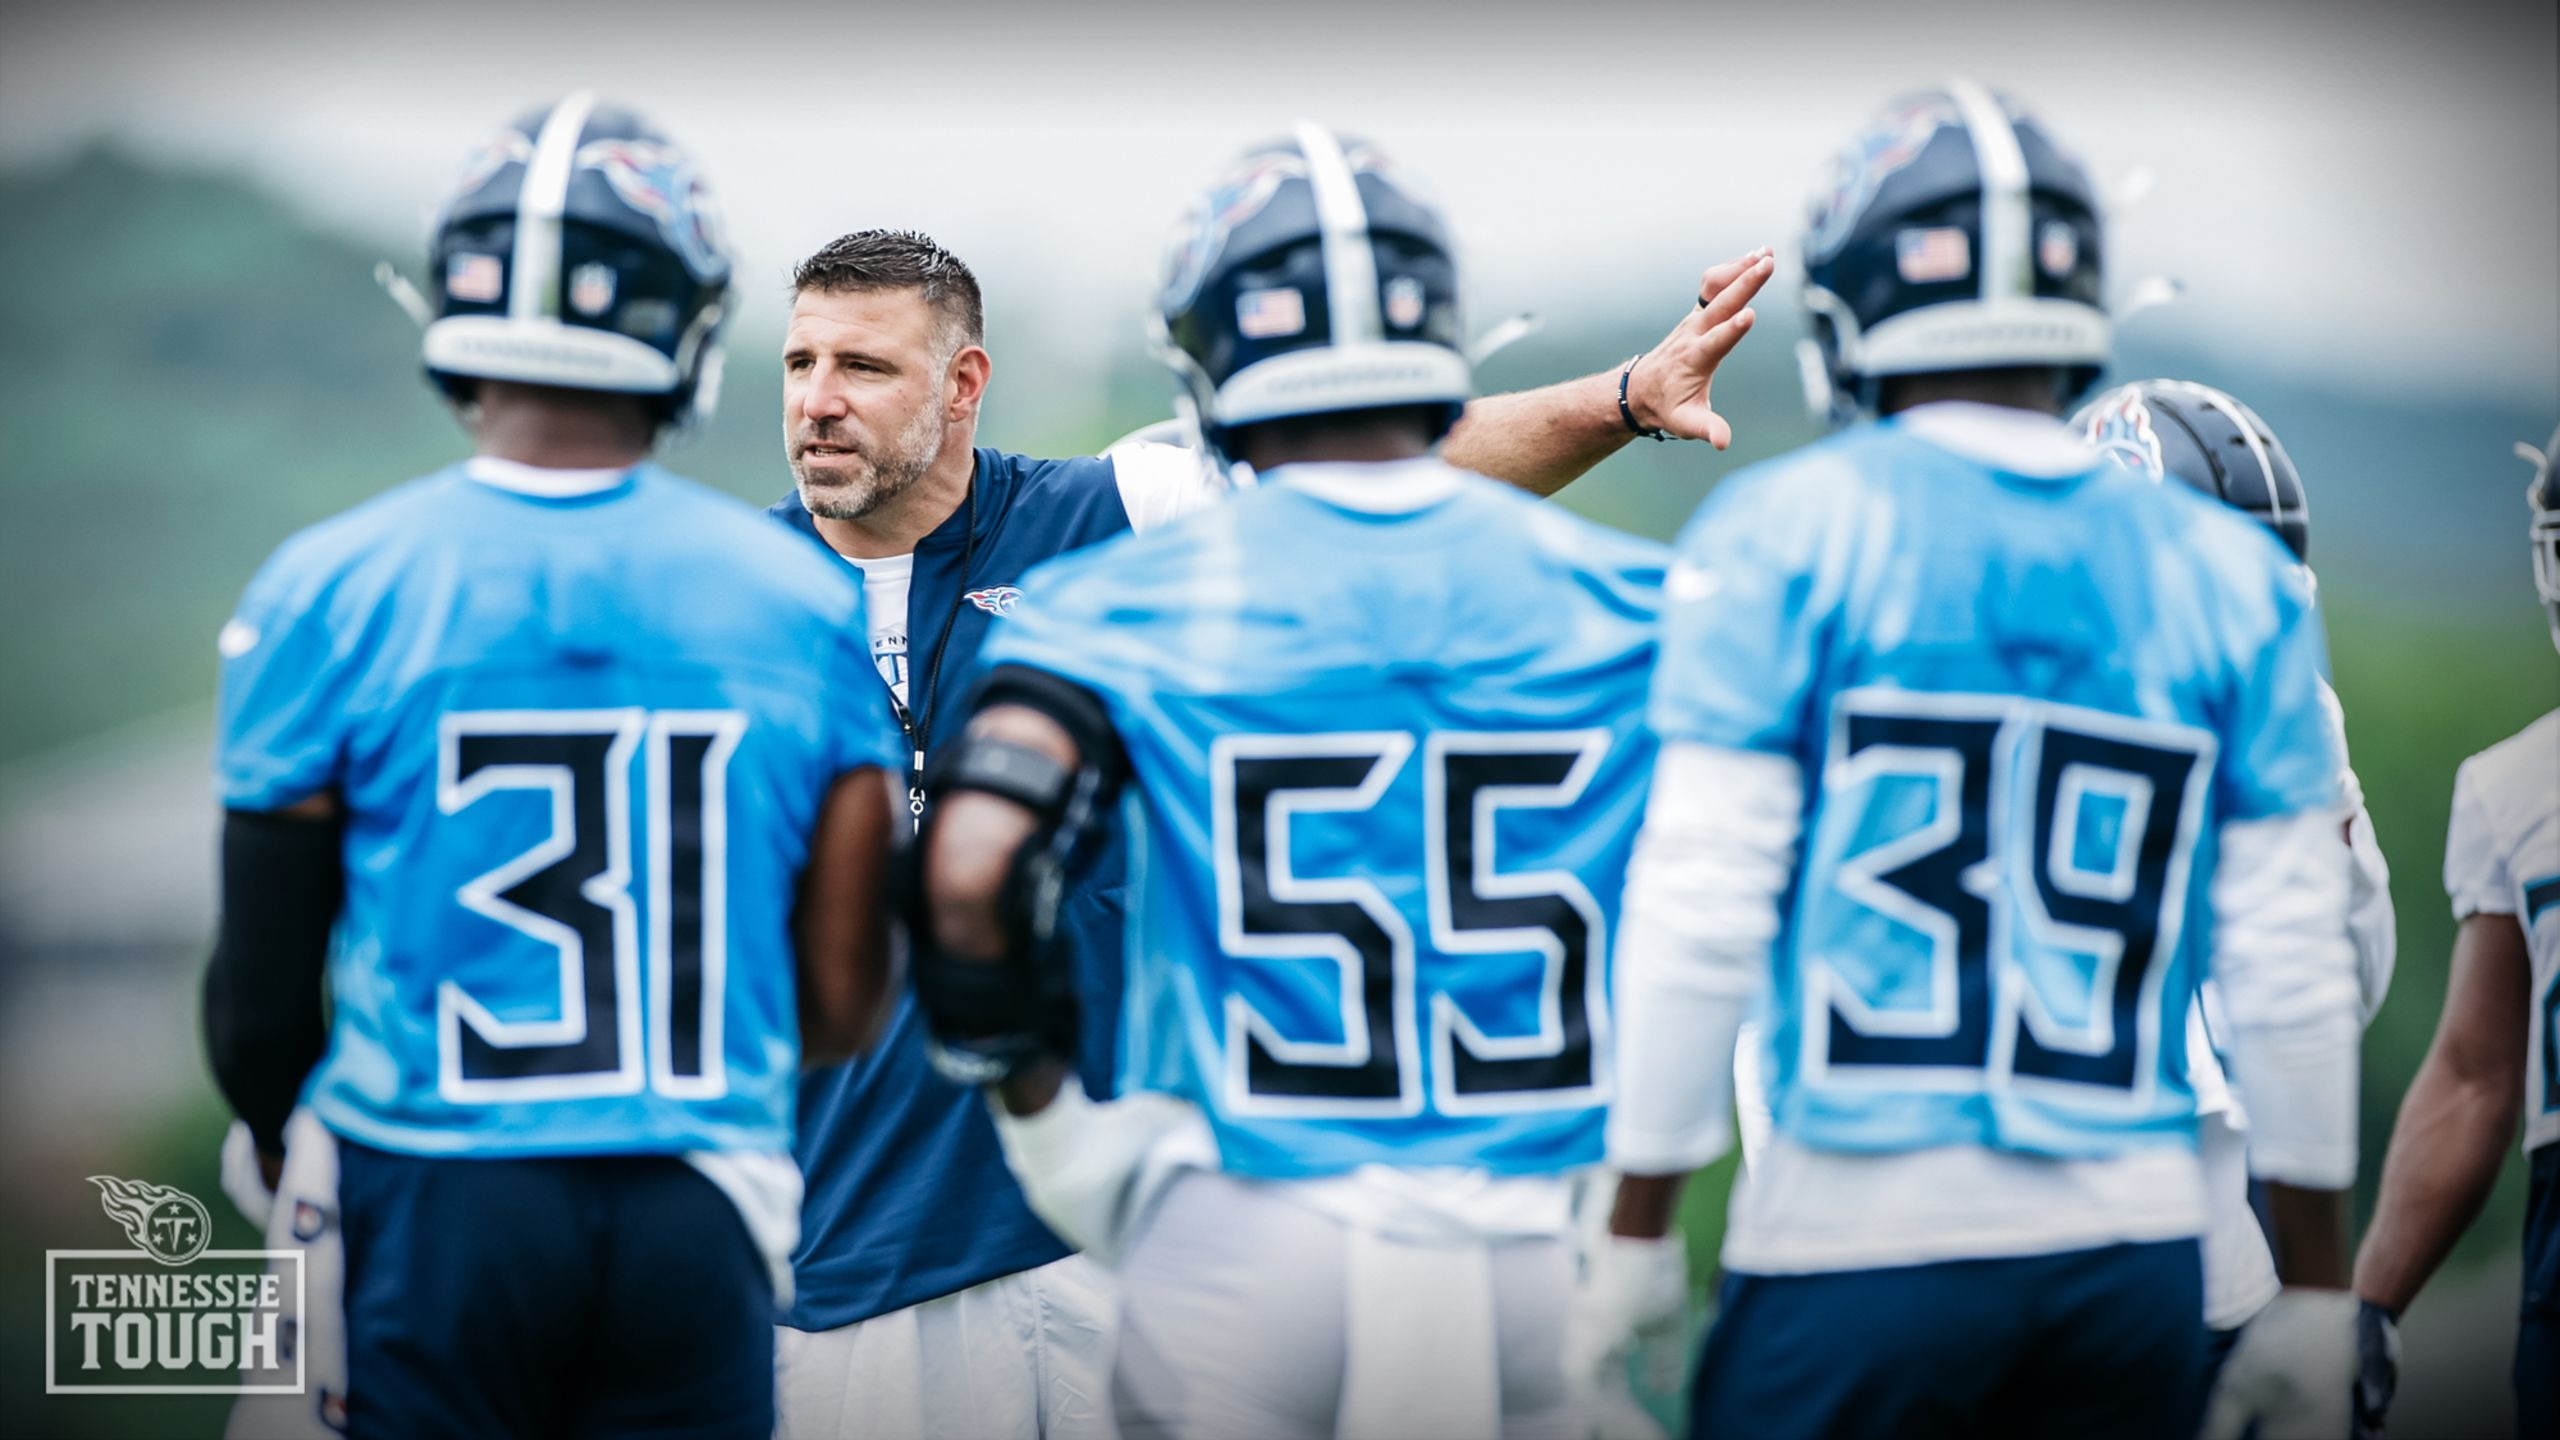 Mike Vabrel coaching the Tennessee Titans through practice